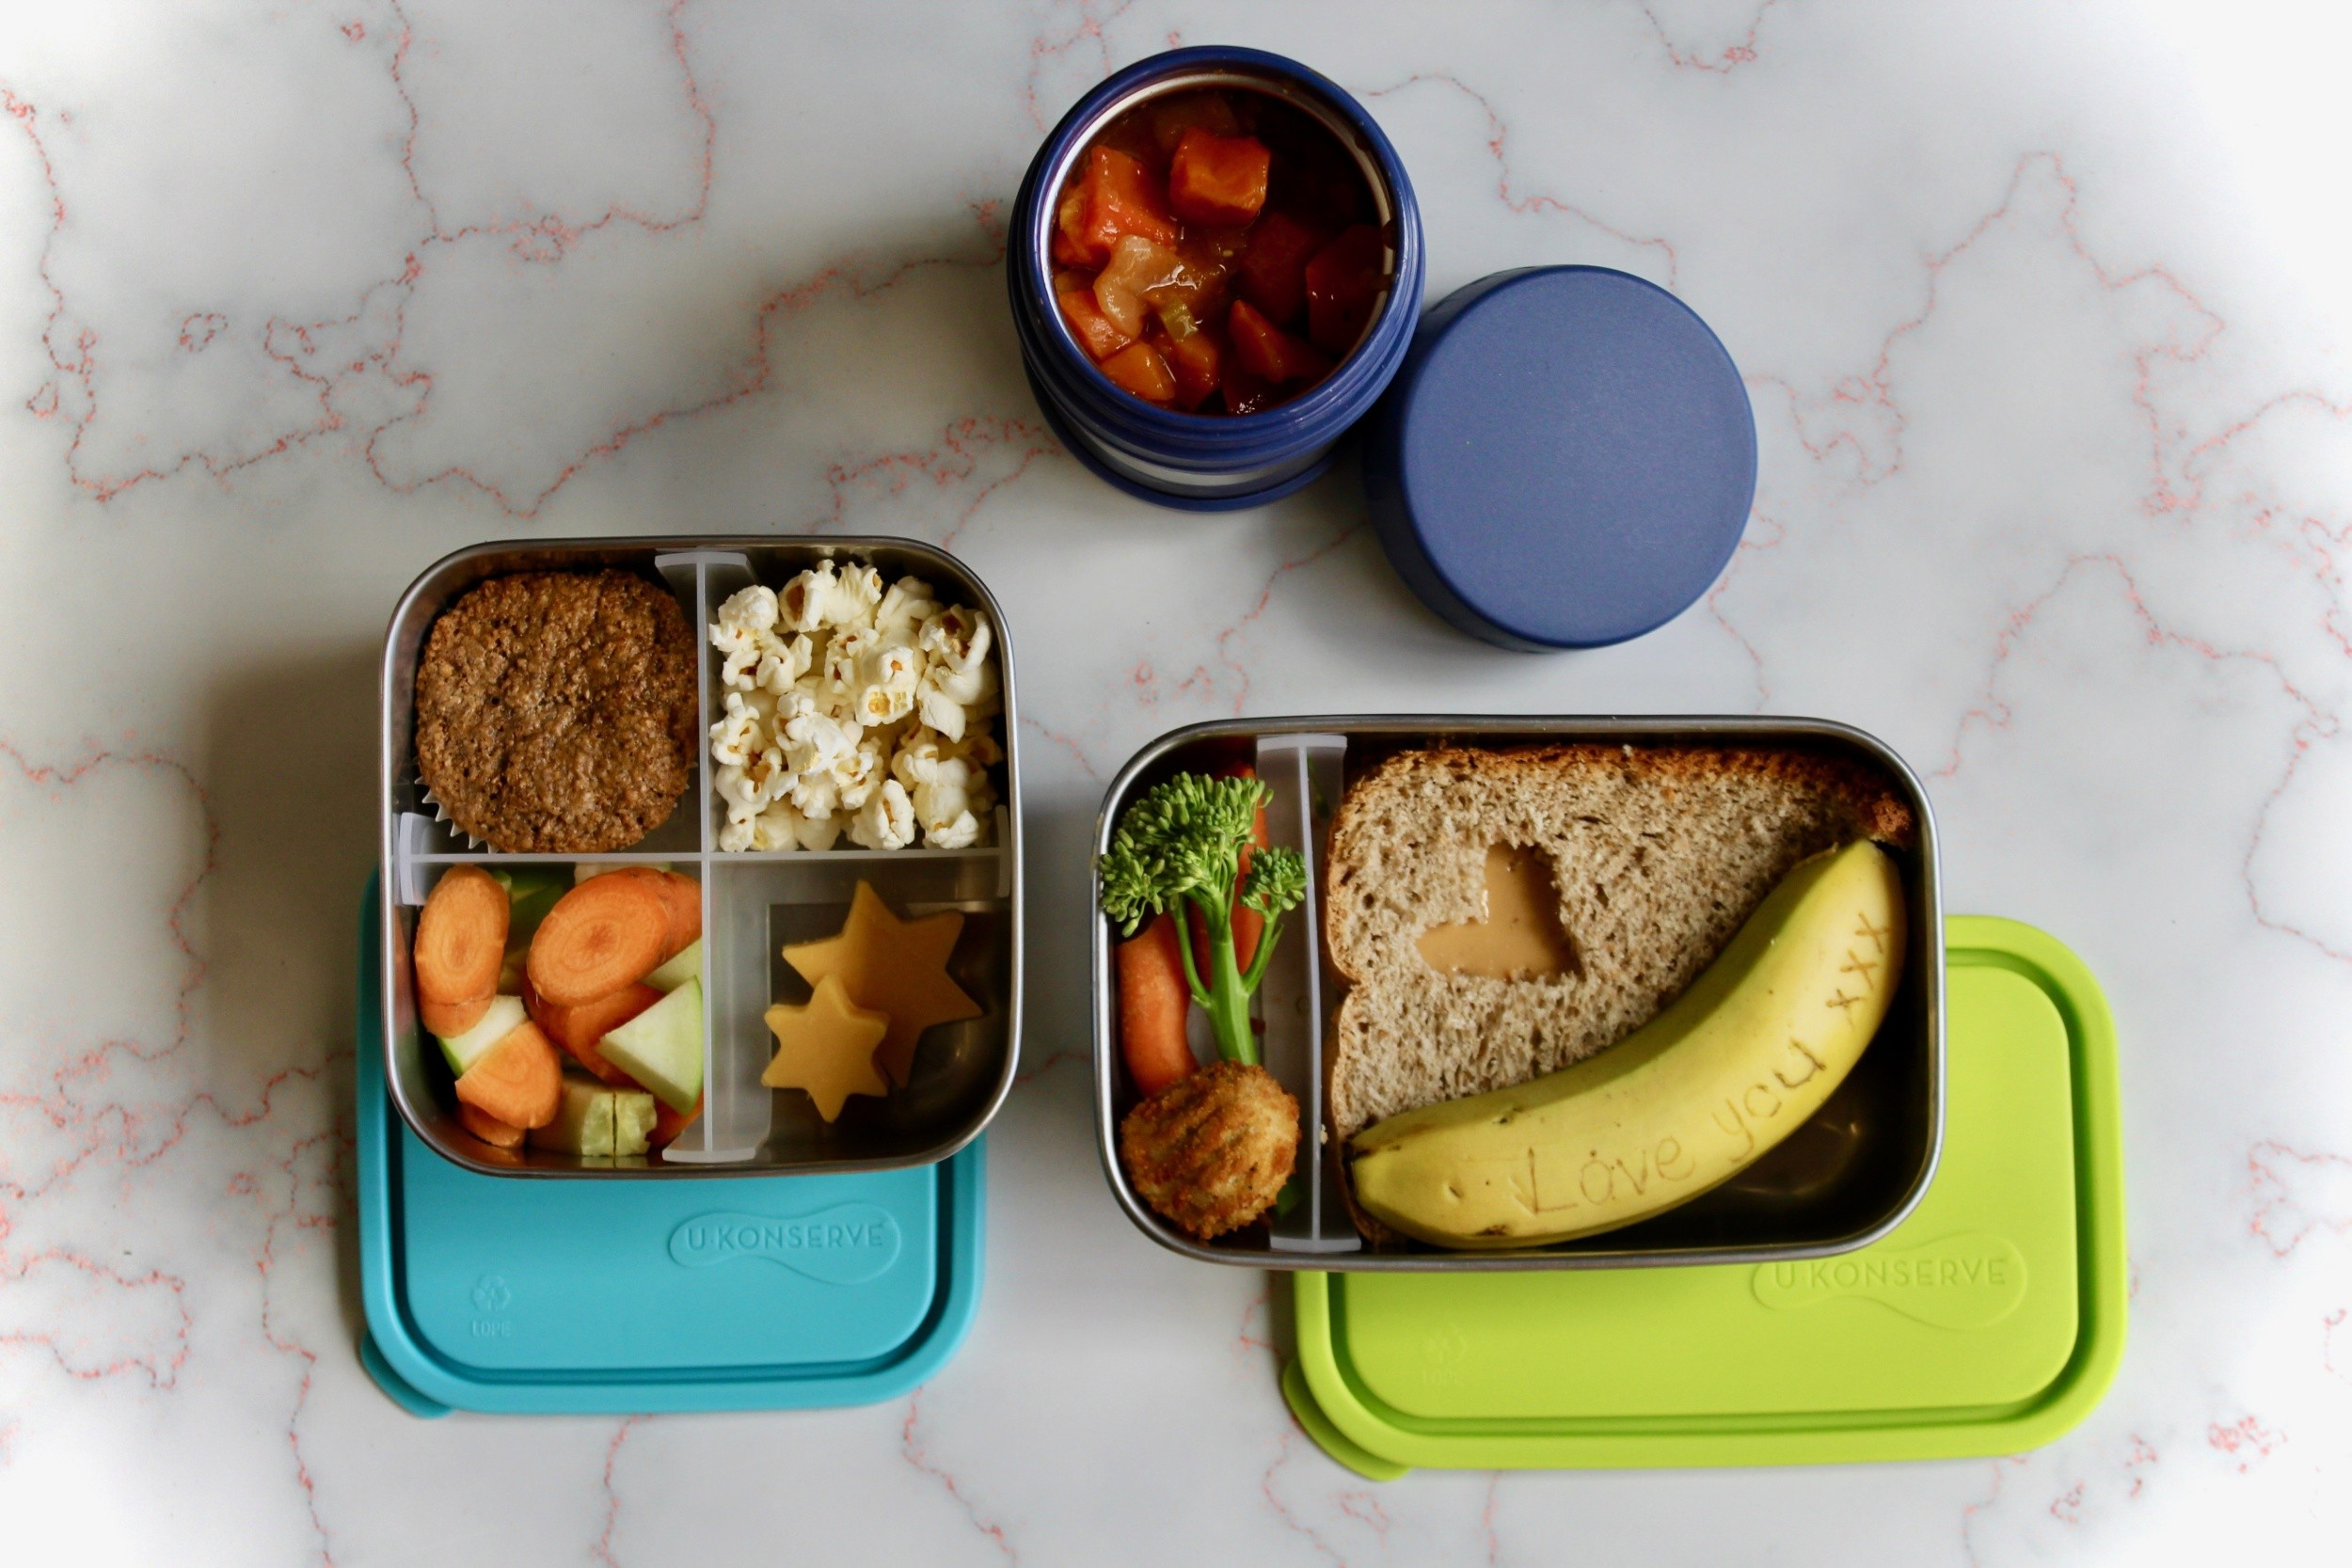 Ukonserve-lunchbox-ideas-Just-a-Mamma-Blog- 6974